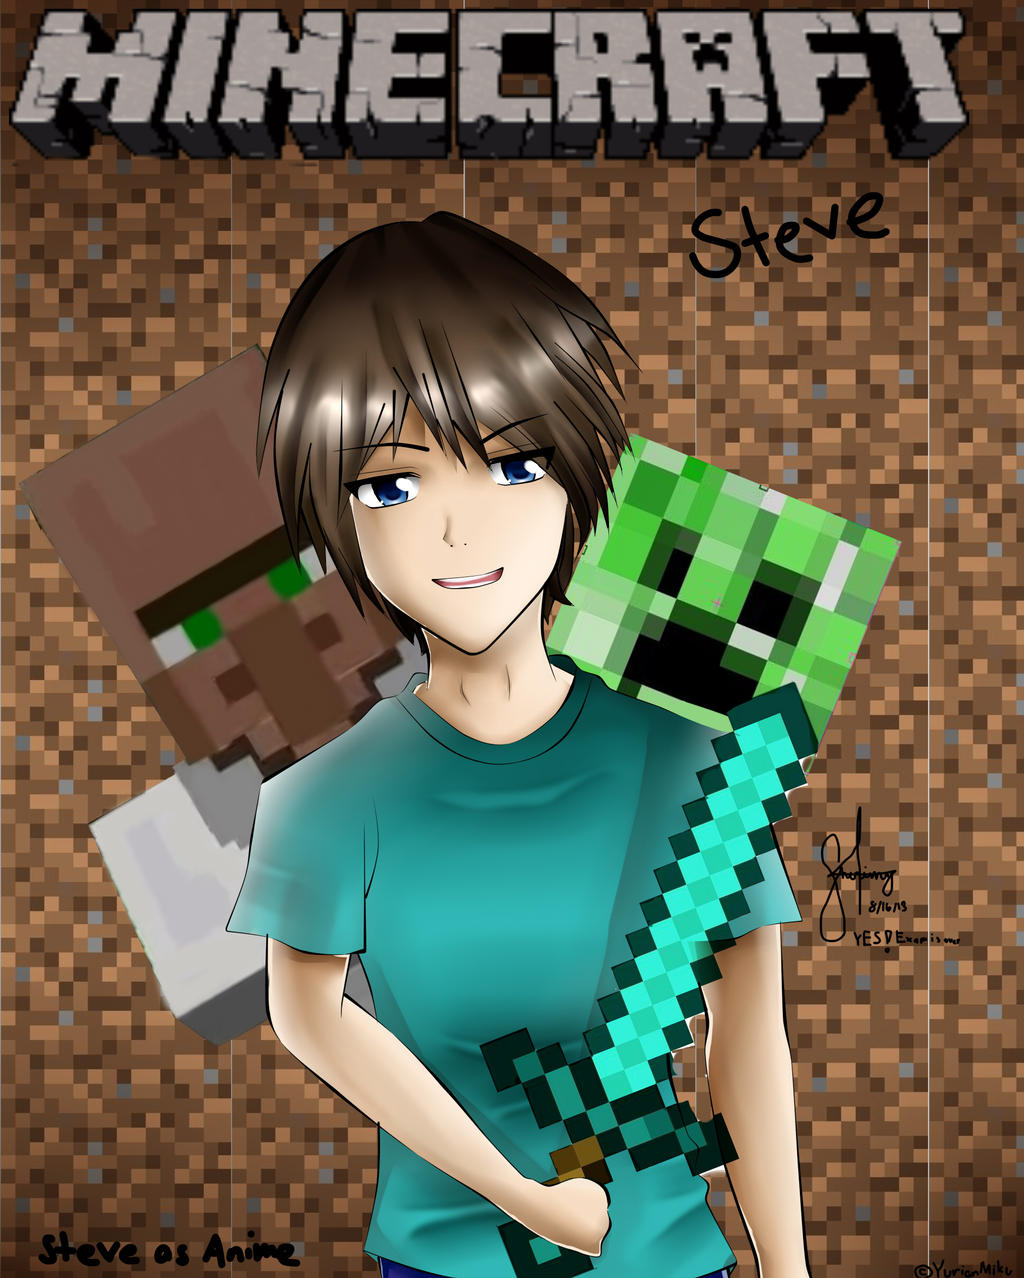 Steve In Minecraft As Anime by yurianmiku on DeviantArt